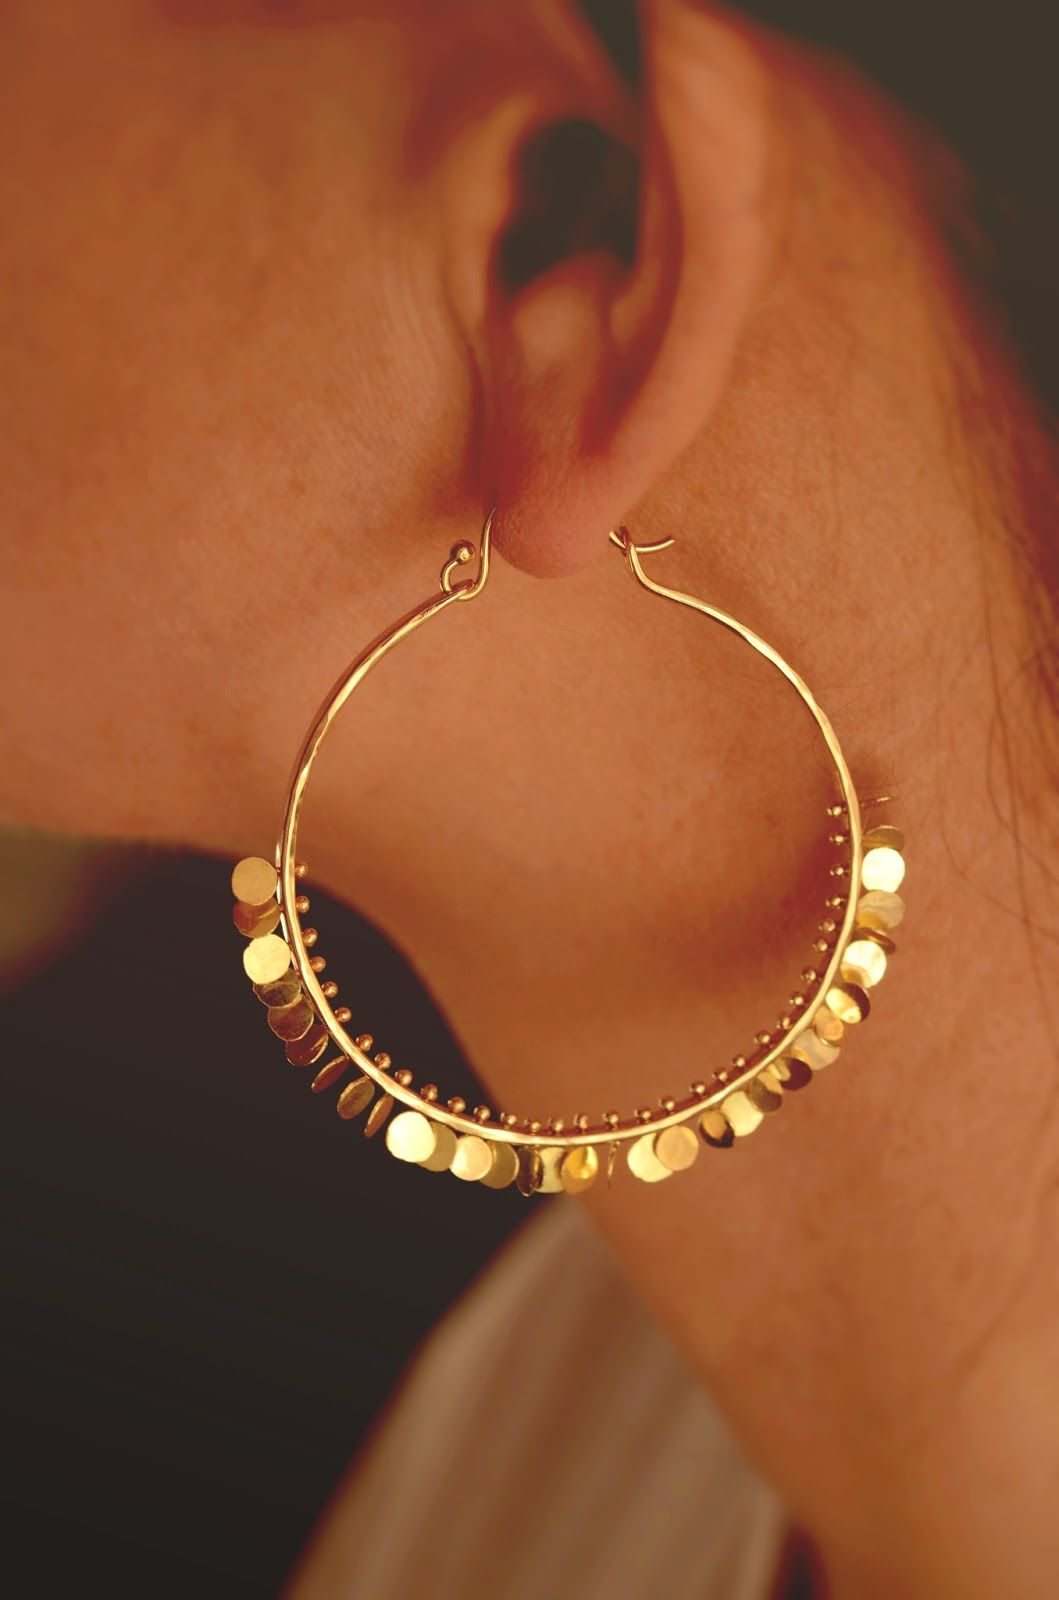 Santa Fe New Mexico jewelry designer Naomi Herndon 18k gold hoops